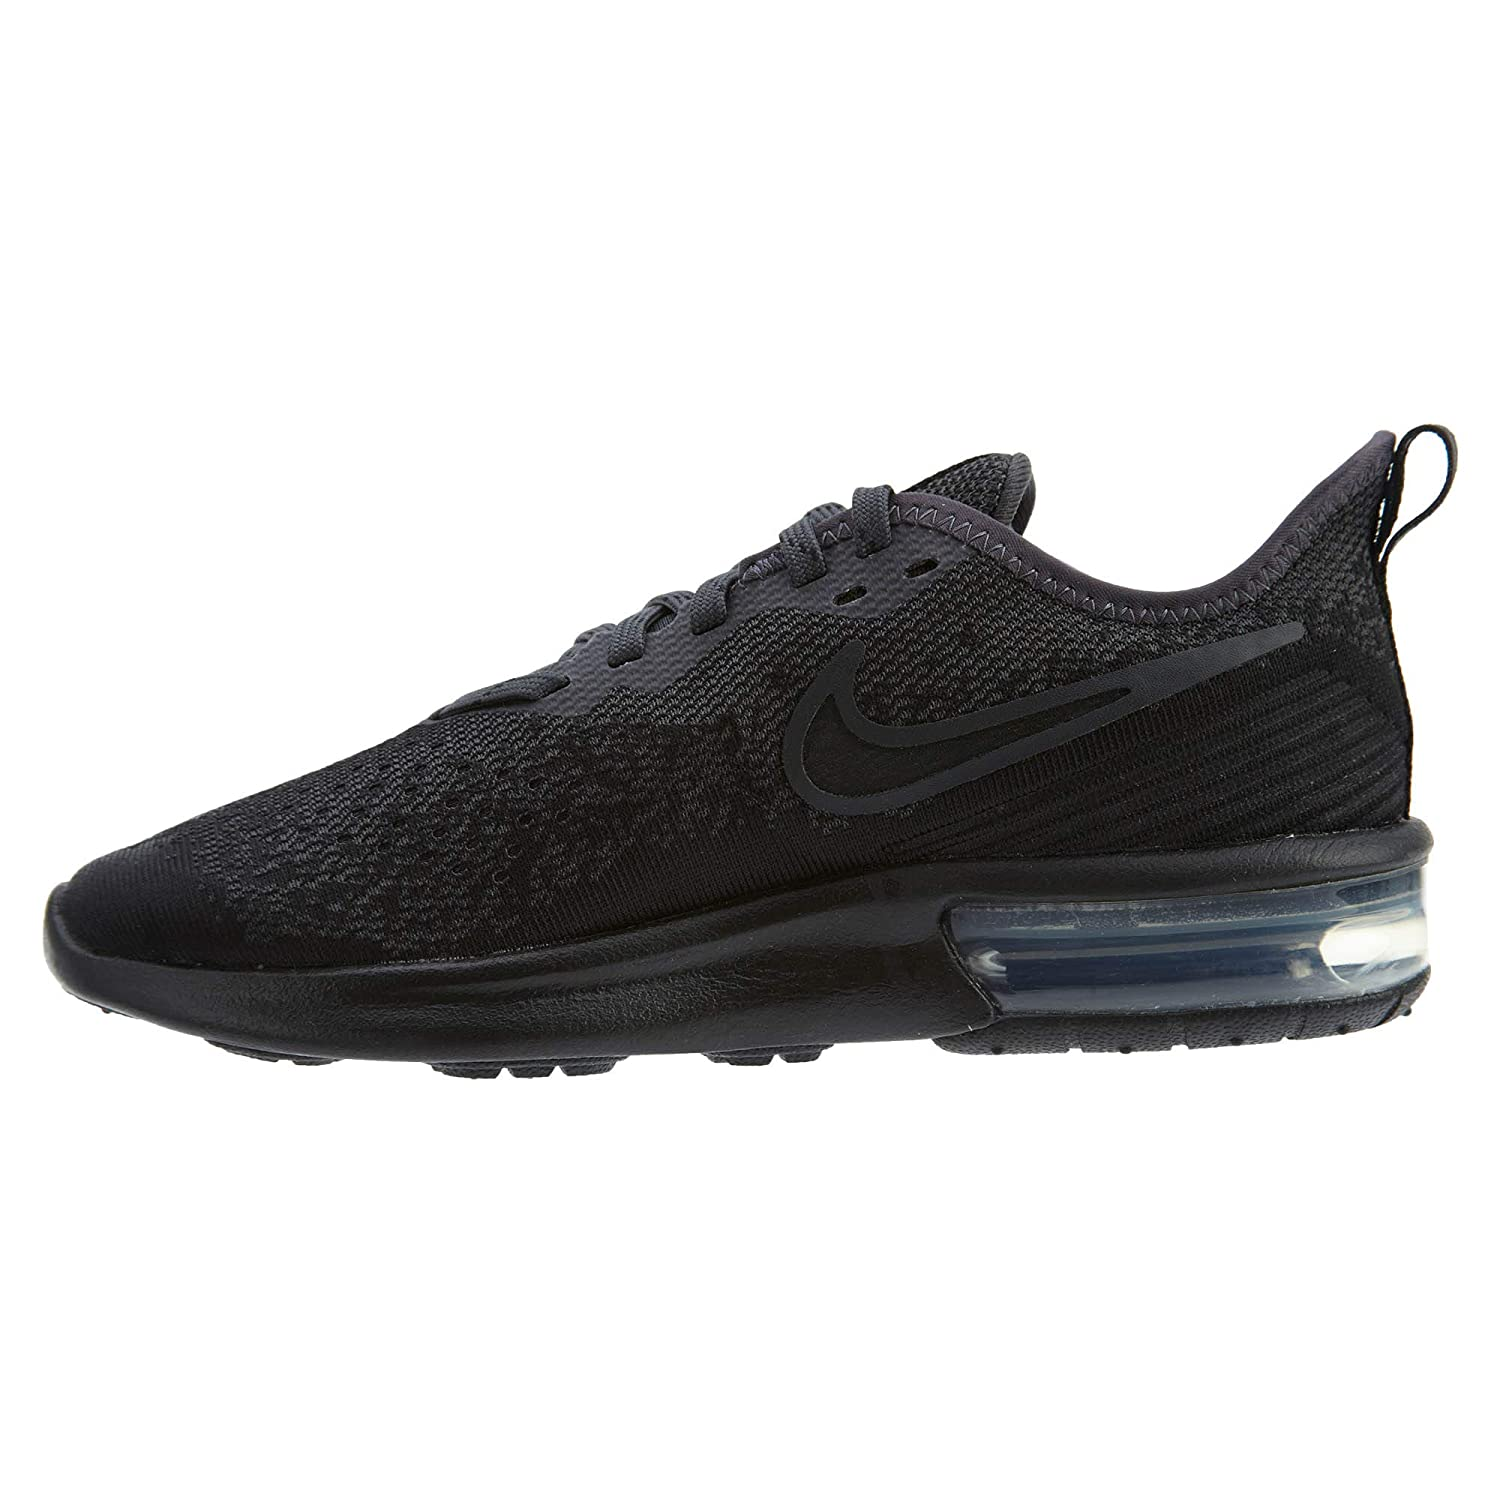 Nike Air Max Sequent 4 Women's Running Shoe blackblack anthracite AO4486 002